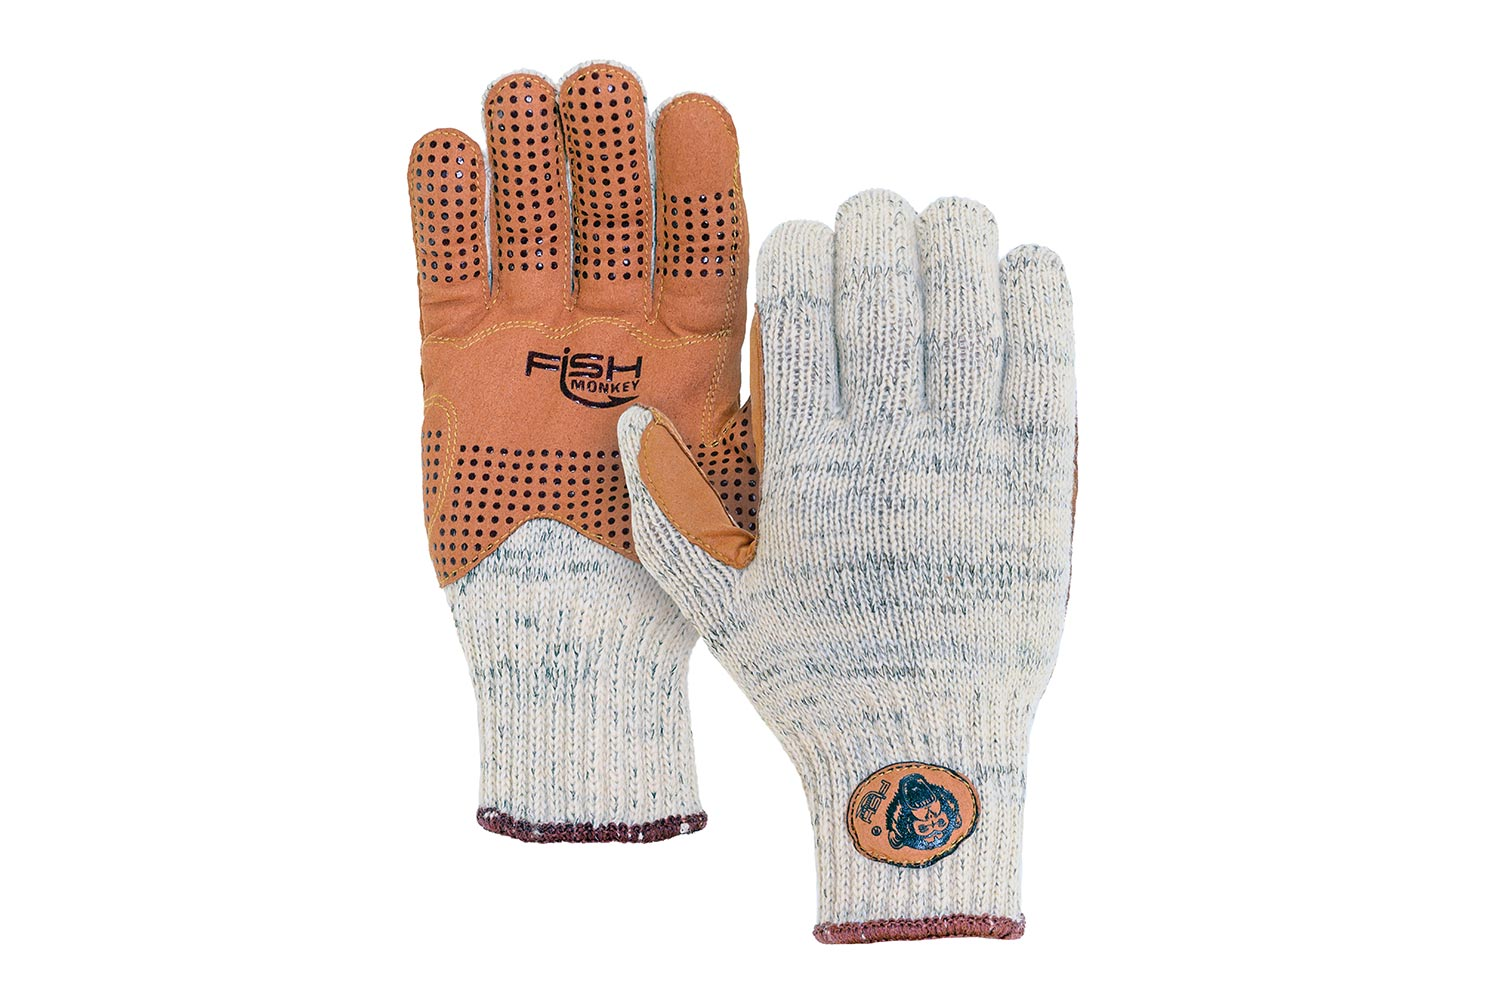 Protect your digits with the warm and applicable Fish Monkey Full Finger Gloves